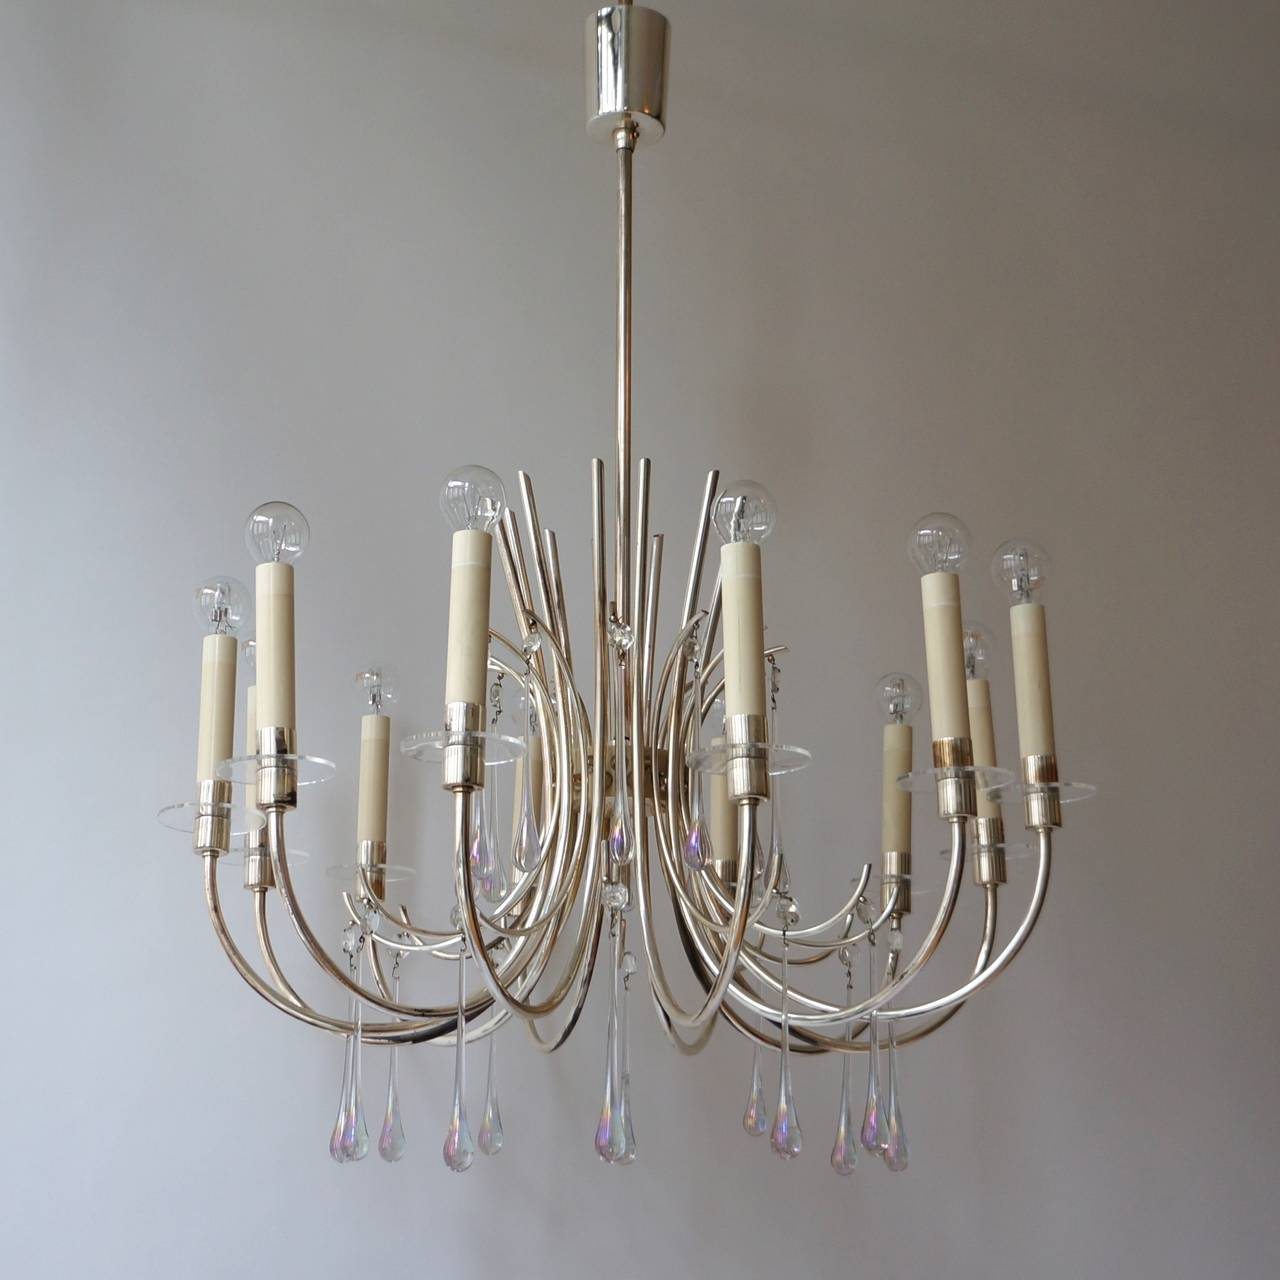 1970s modernist and polished aluminum ceiling fixture. 12 lights. Measures: Total height: 75 cm.